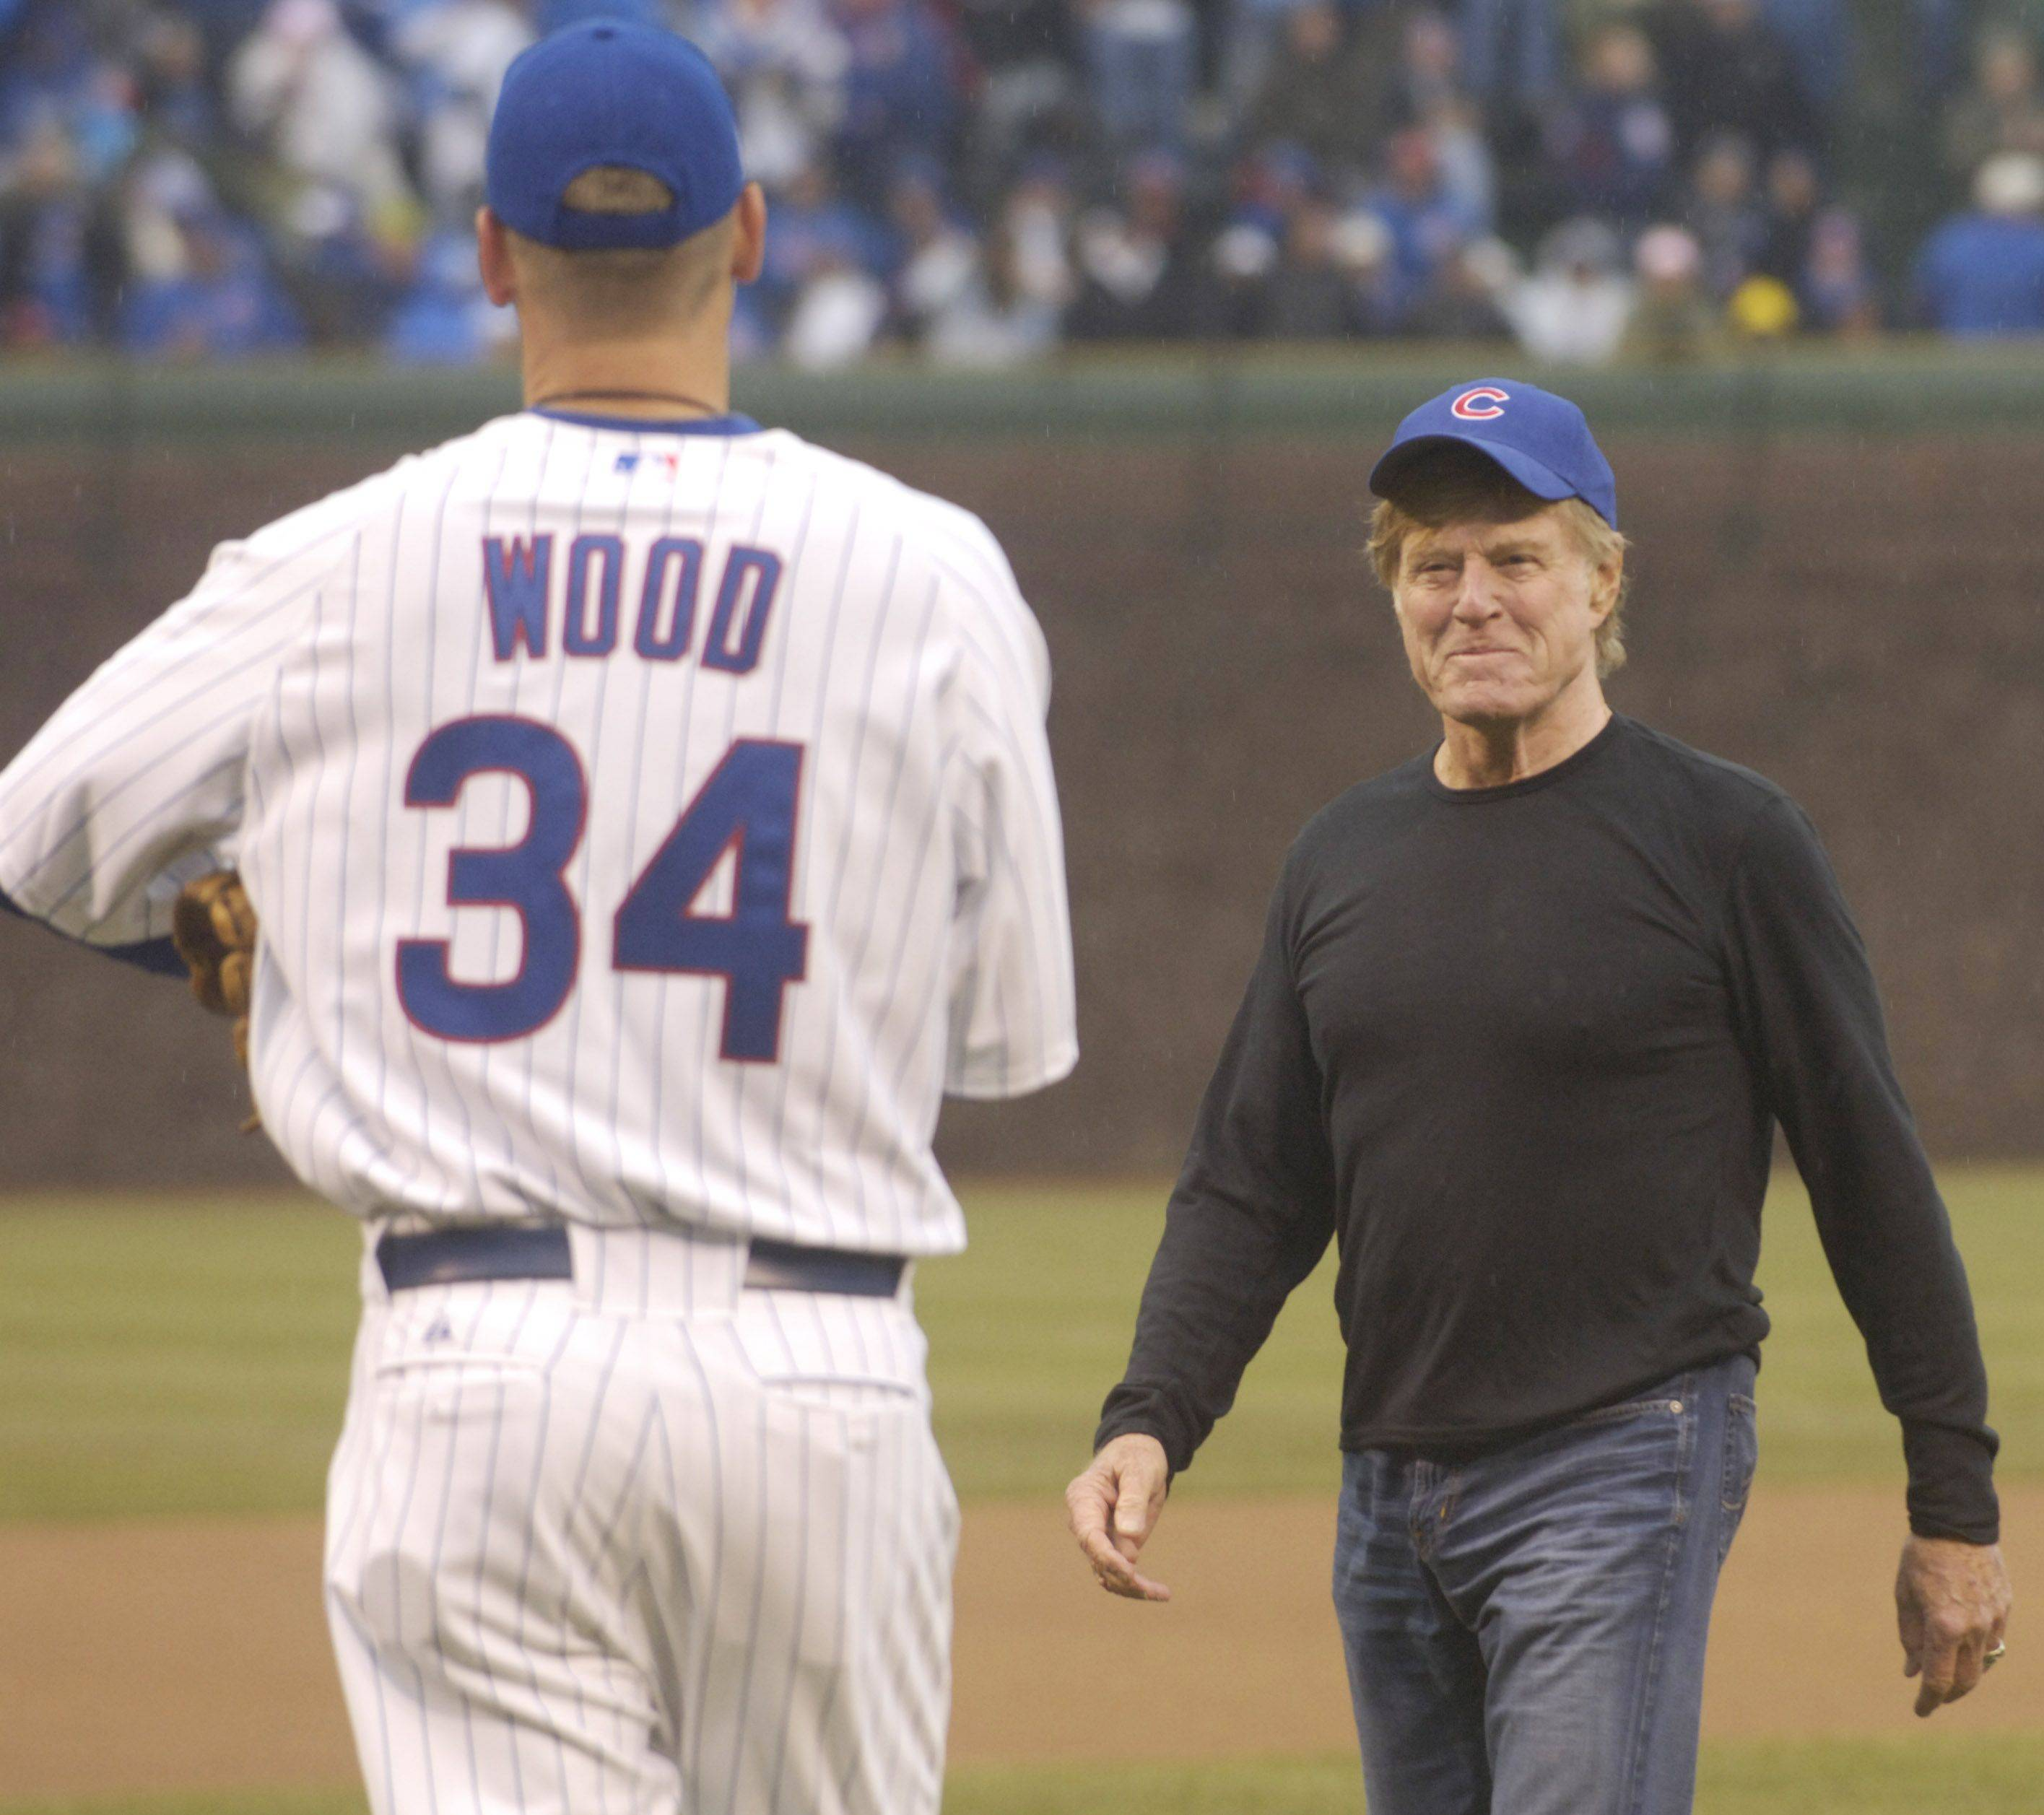 Actor and director Robert Redford walks to Kerry Wood after throwing out the first pitch.